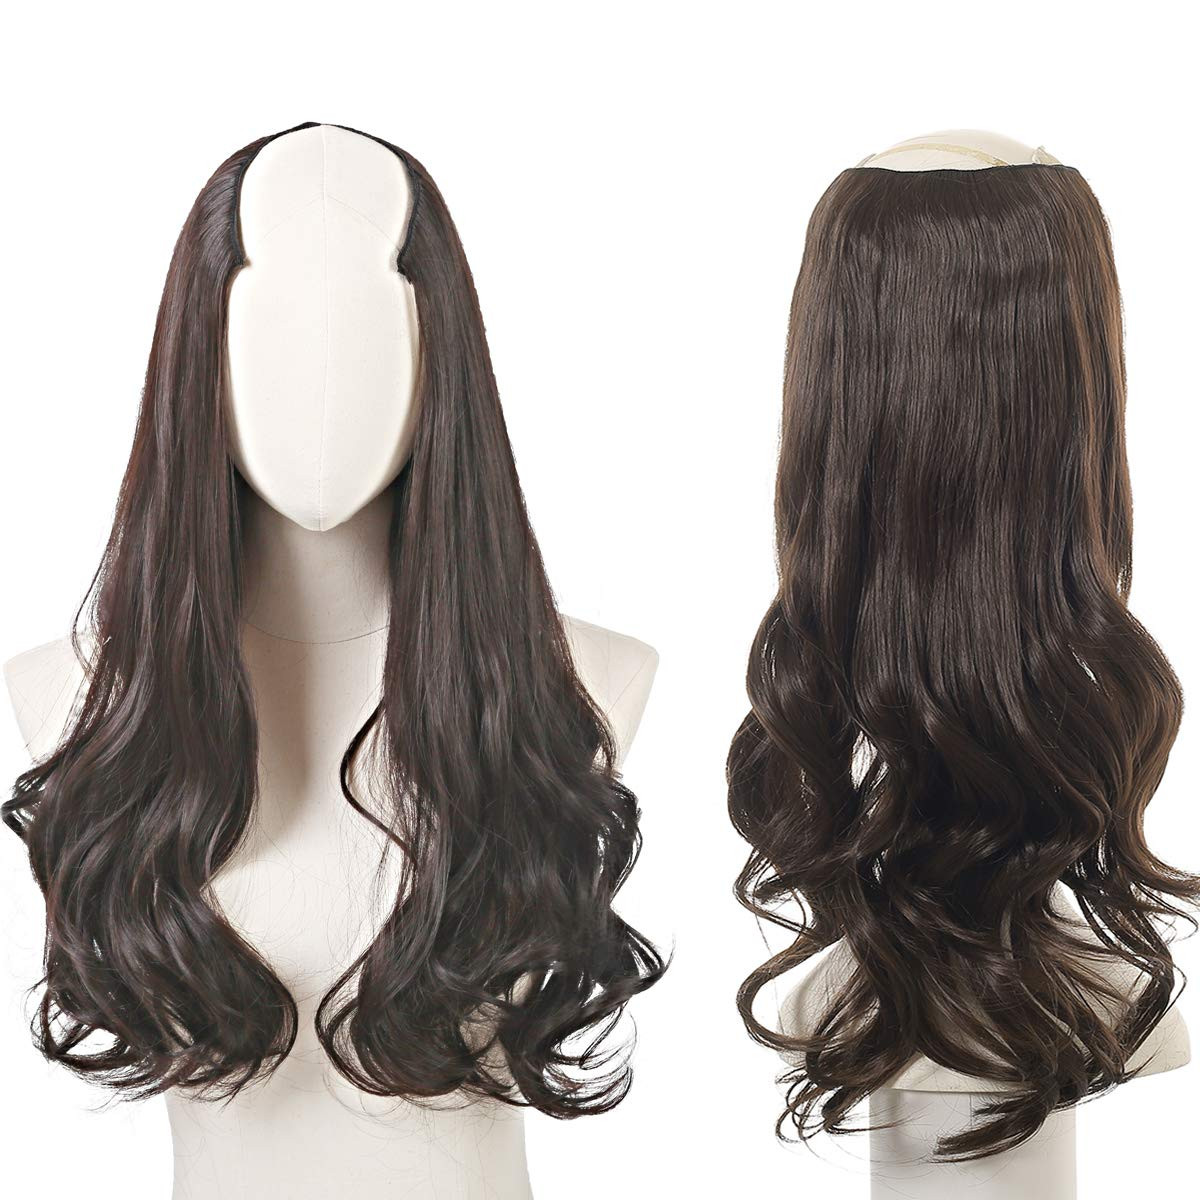 """Clip in Hair Extension Brown Curly Curl Wave Full Head Long 24"""" 0.37lb 170g One Piece U part Synthetic Hairpiece For Women Natural Real Hair Piece Japan High Temperature Fiber(UH17#6 Dark brown)"""